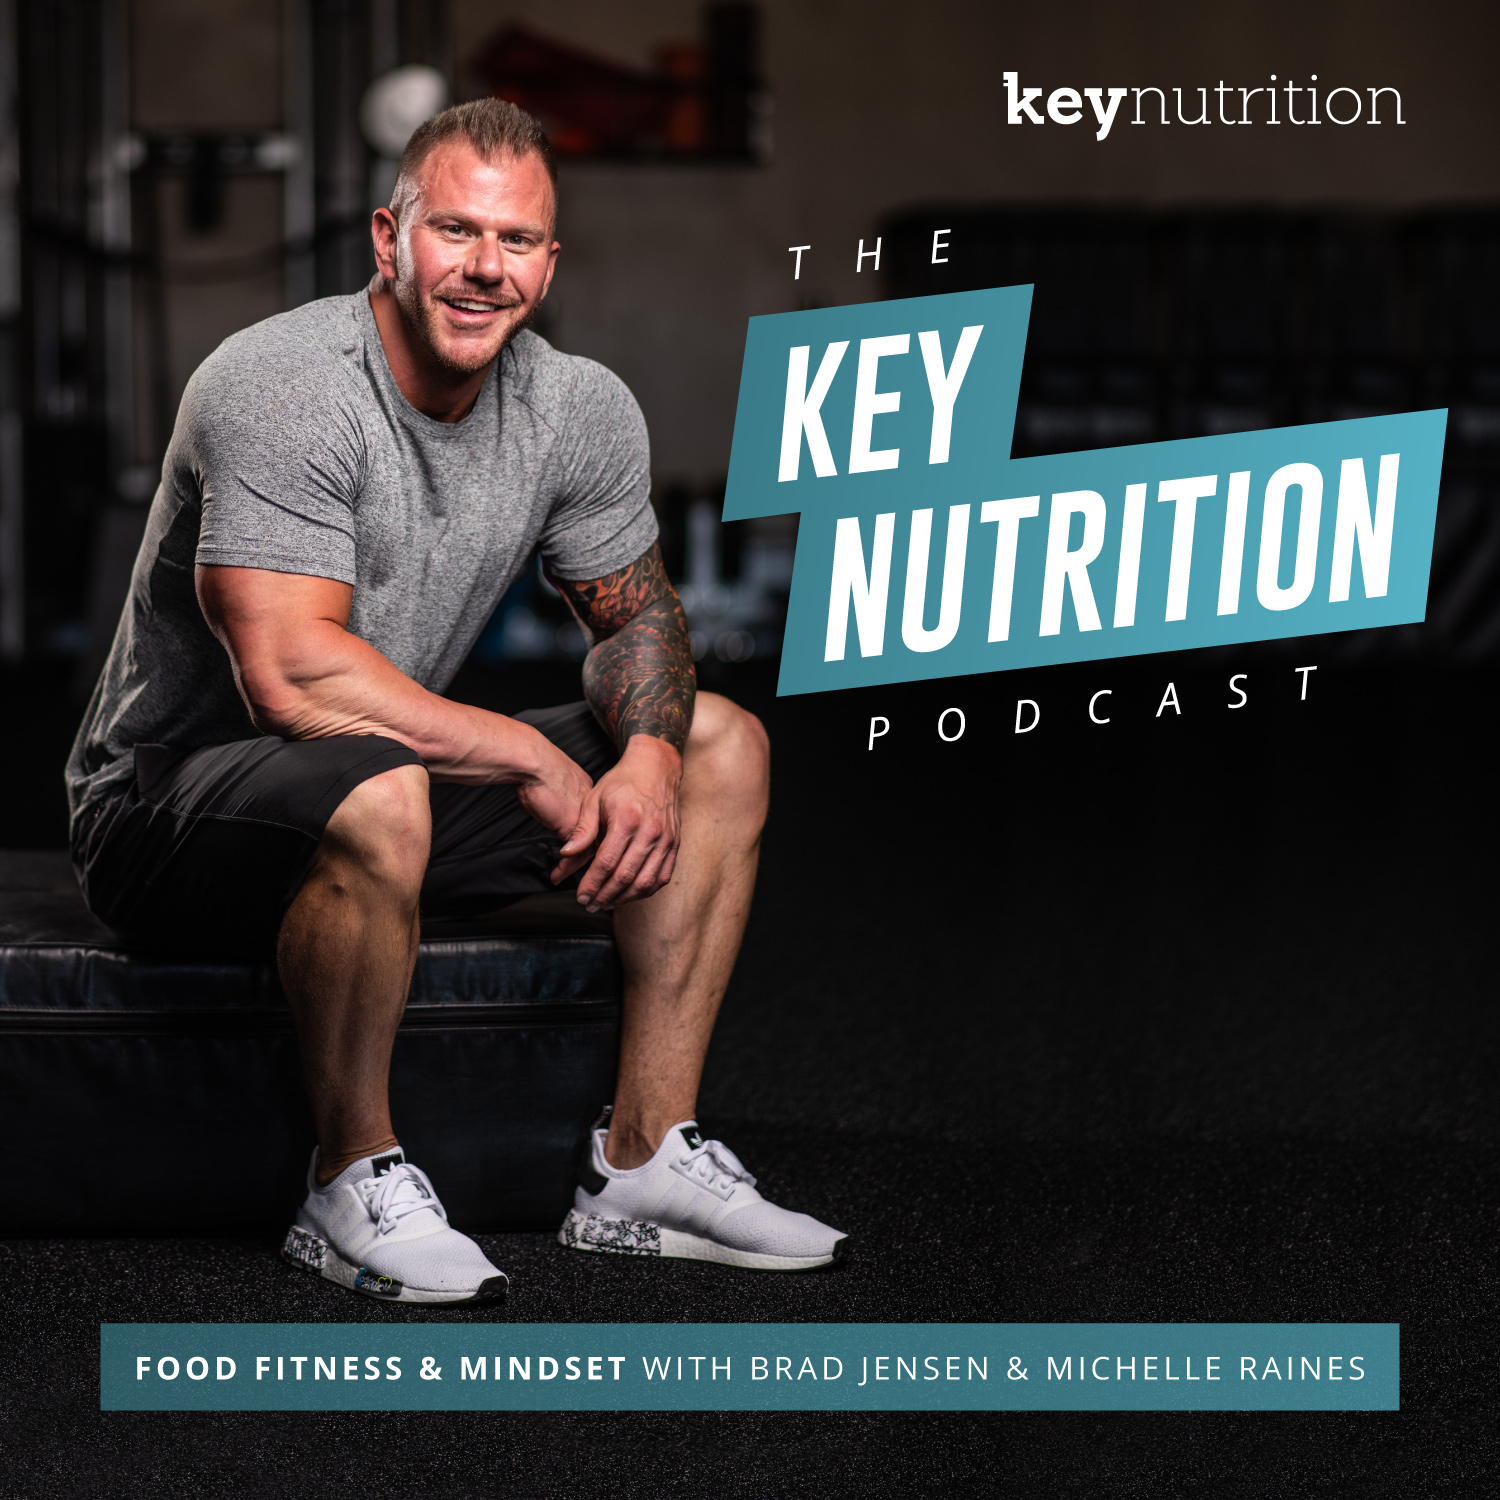 KNP248 – Take Charge of Your Own Health and Fitness Journey With Courtney For Life